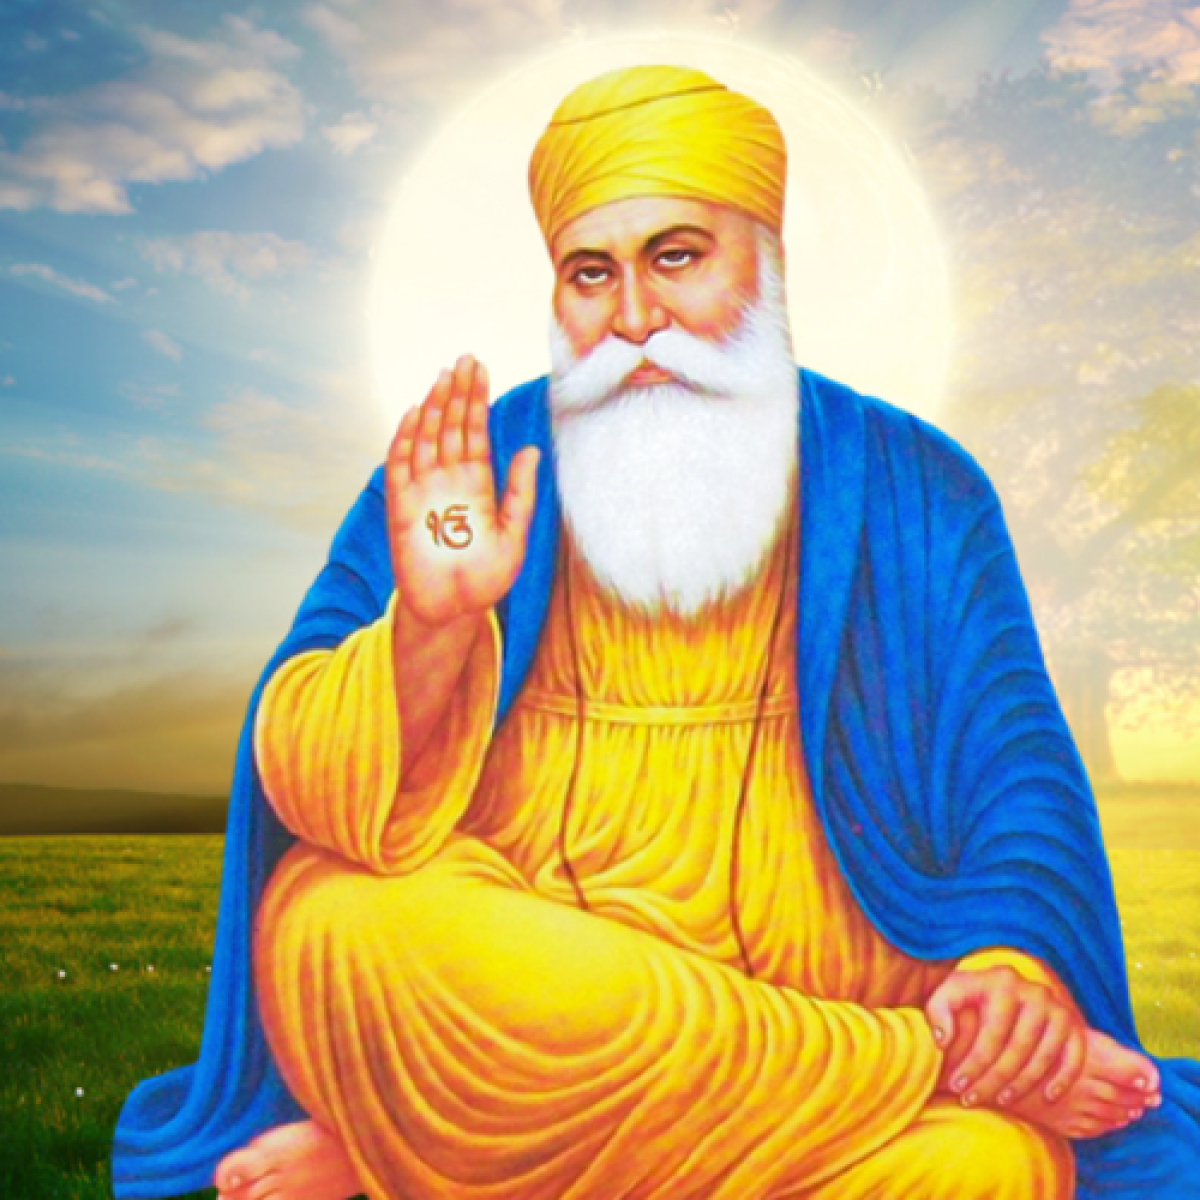 Guru Nanak Death Anniversary 2020: Inspirational quotes and teachings by Nanak Dev on his 481st death anniversary